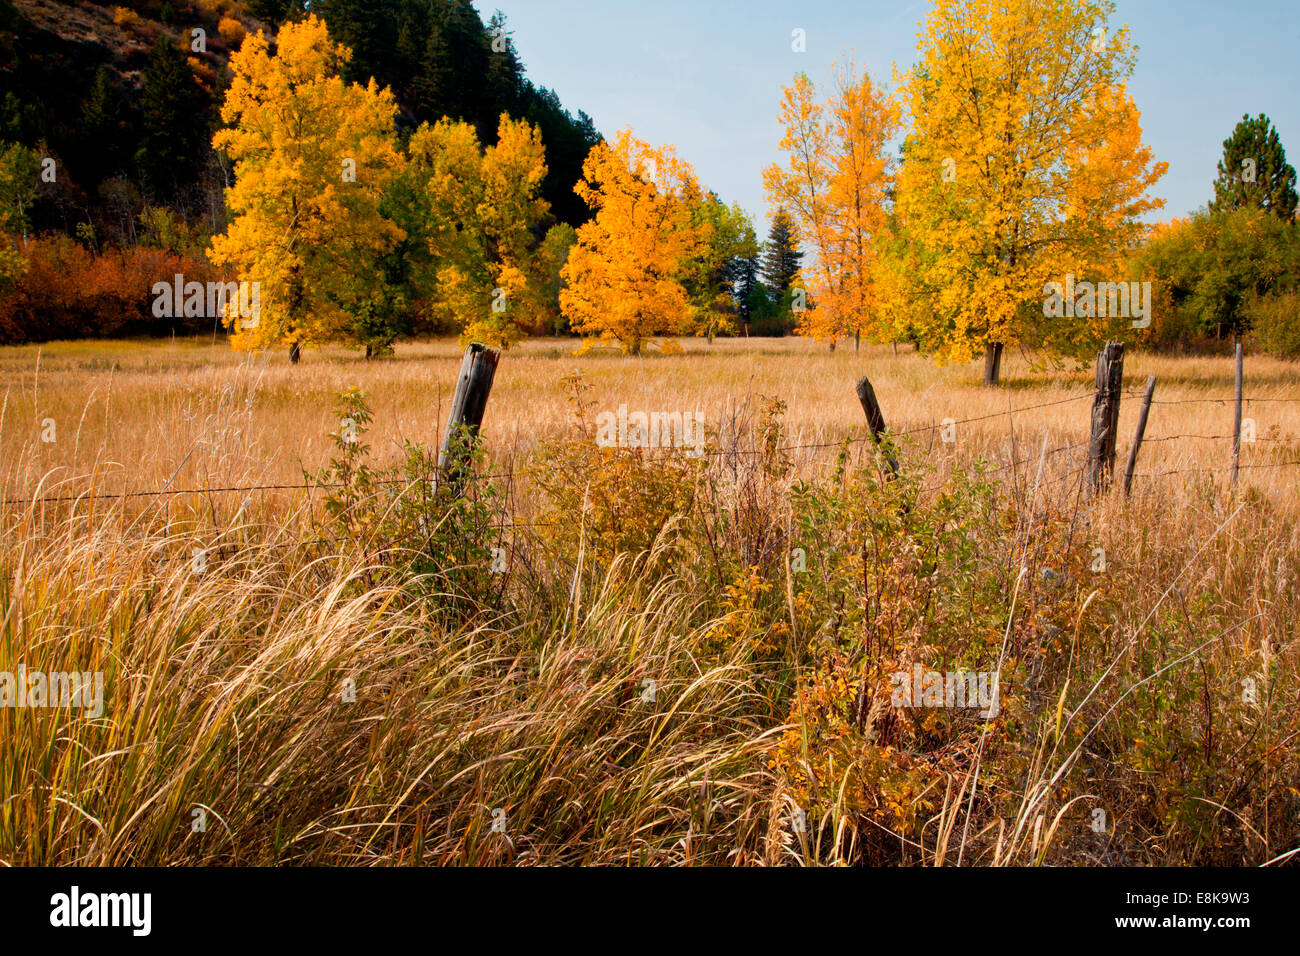 Golden trees in pasture by Snake River, Idaho, USA. - Stock Image